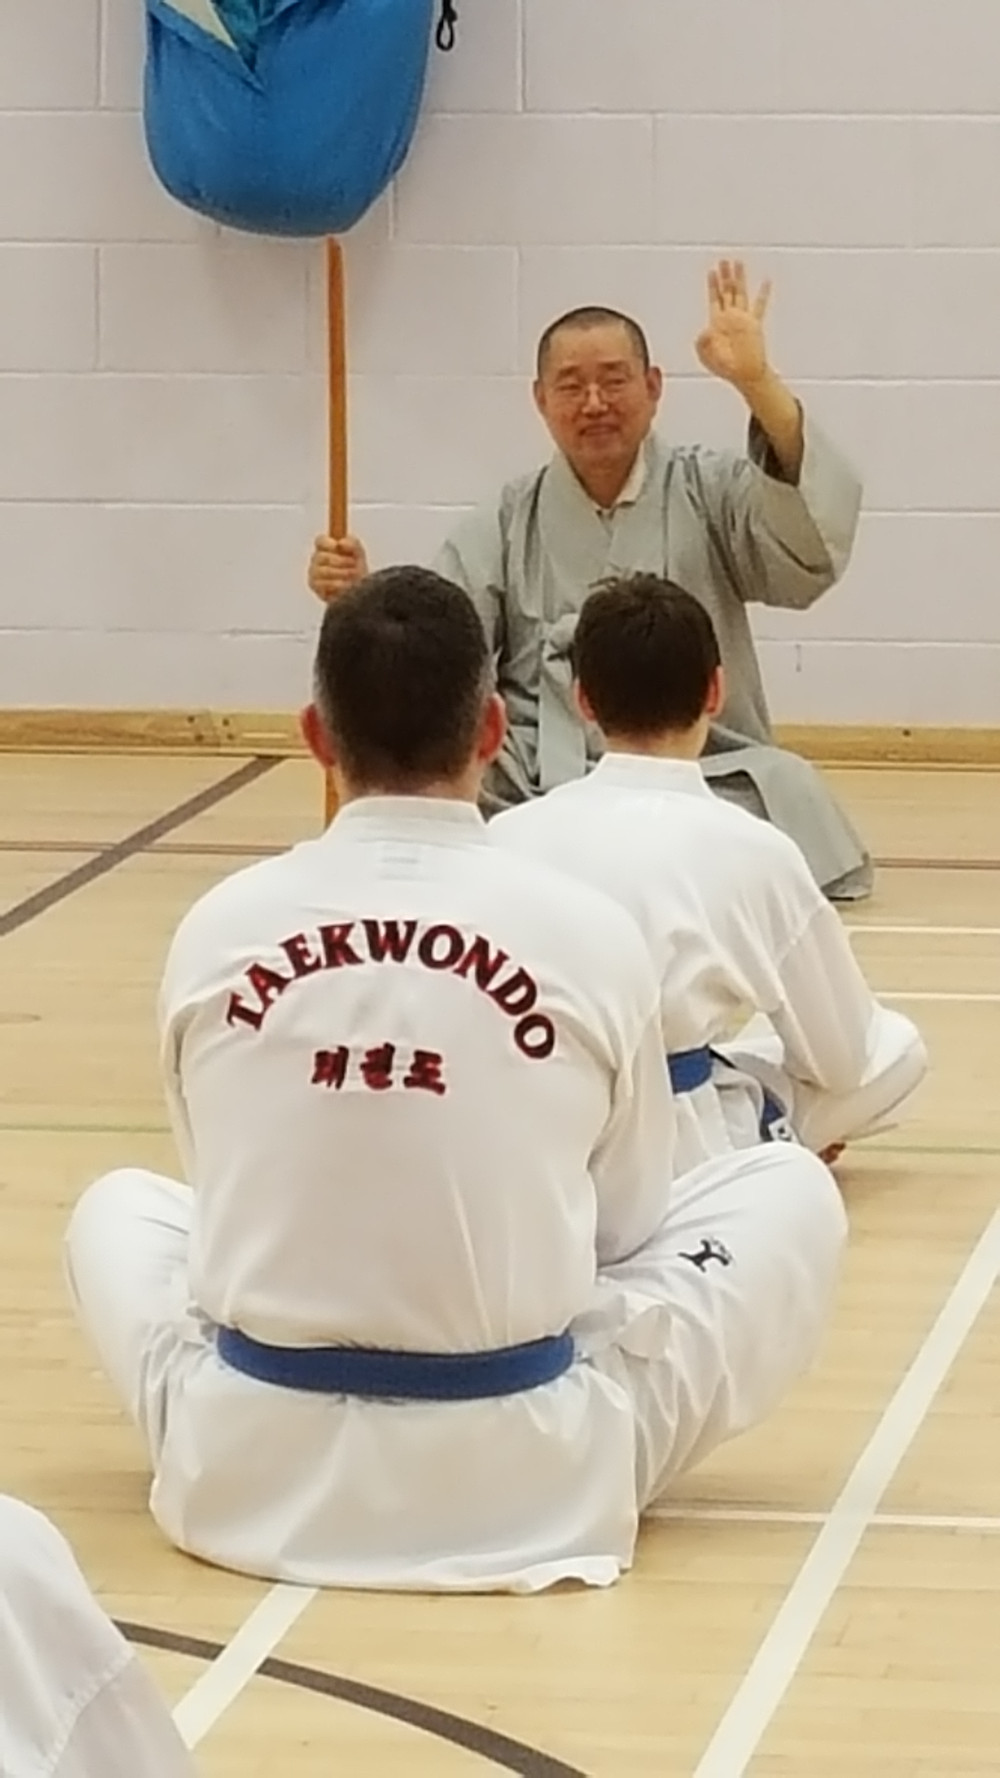 buddhist monk taekwondo training